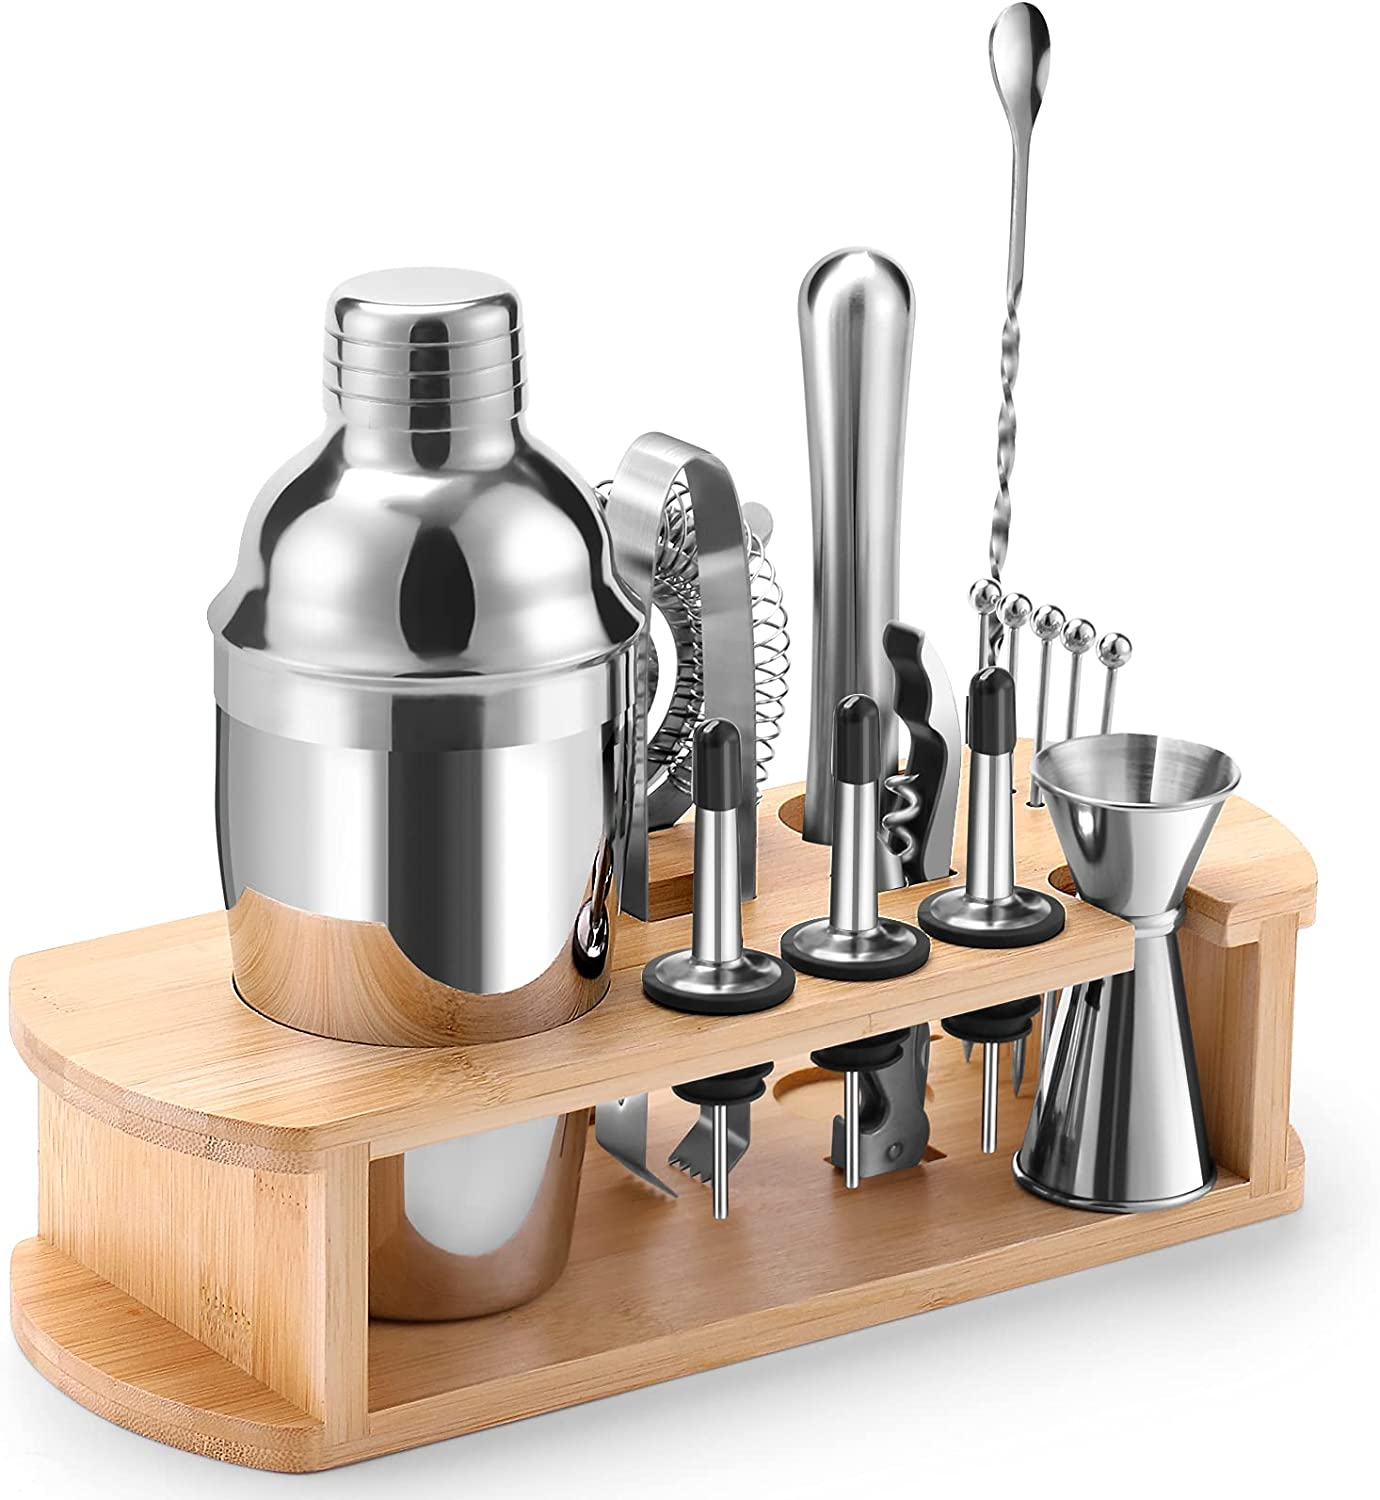 Bournis Cocktail Shaker Set with Stand, 16 Pcs 24oz Stainless Steel Cocktail Shaker Bartender Kit with Stand, Bar Tools Shaker Strainer Jigger Muddler Kit